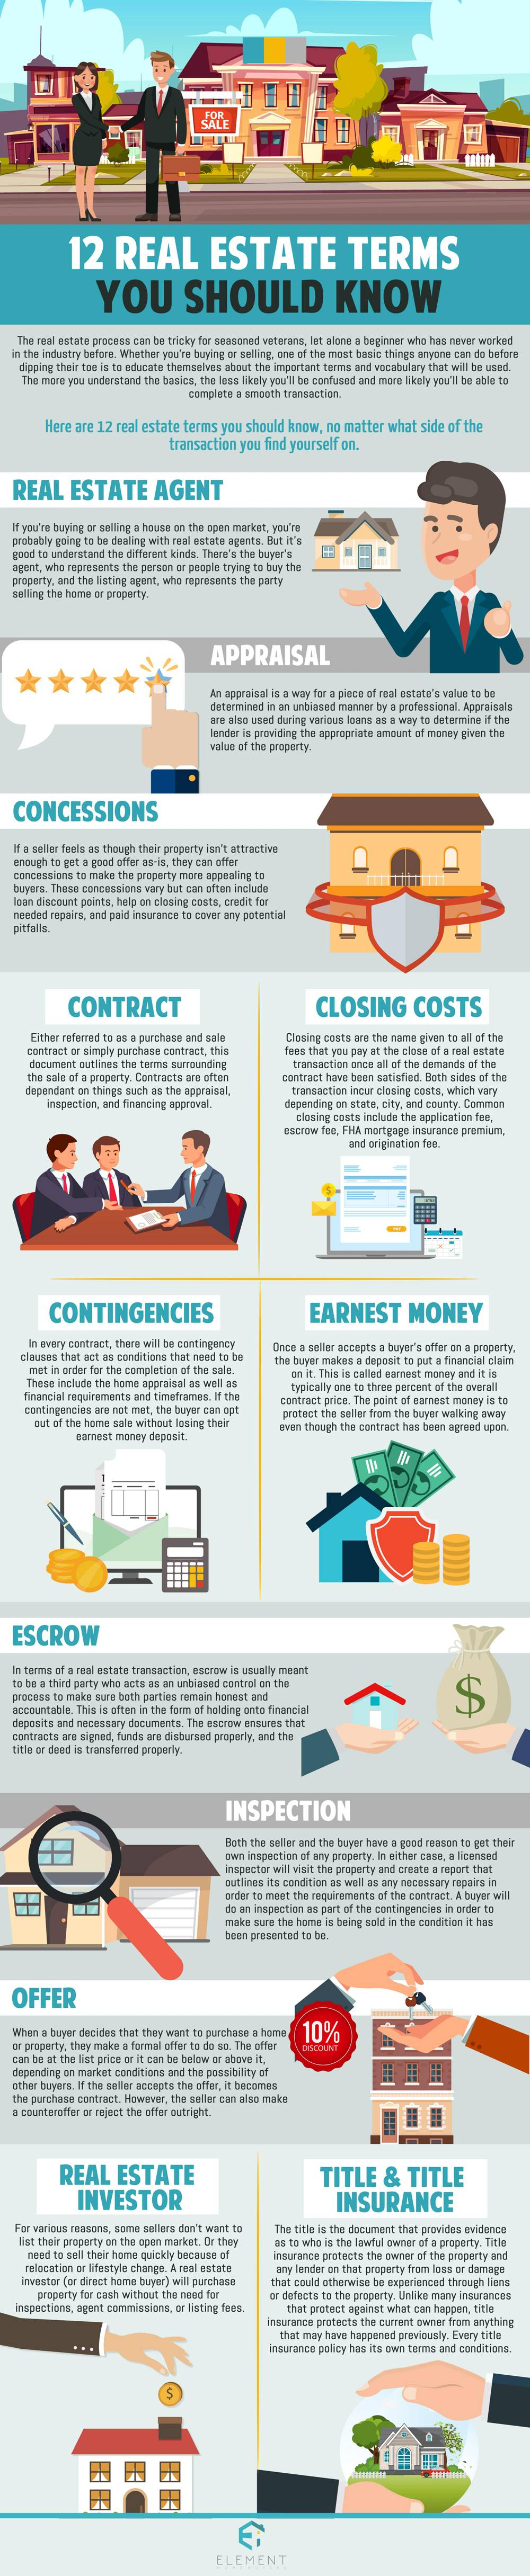 12 Real Estate Terms You Should Know